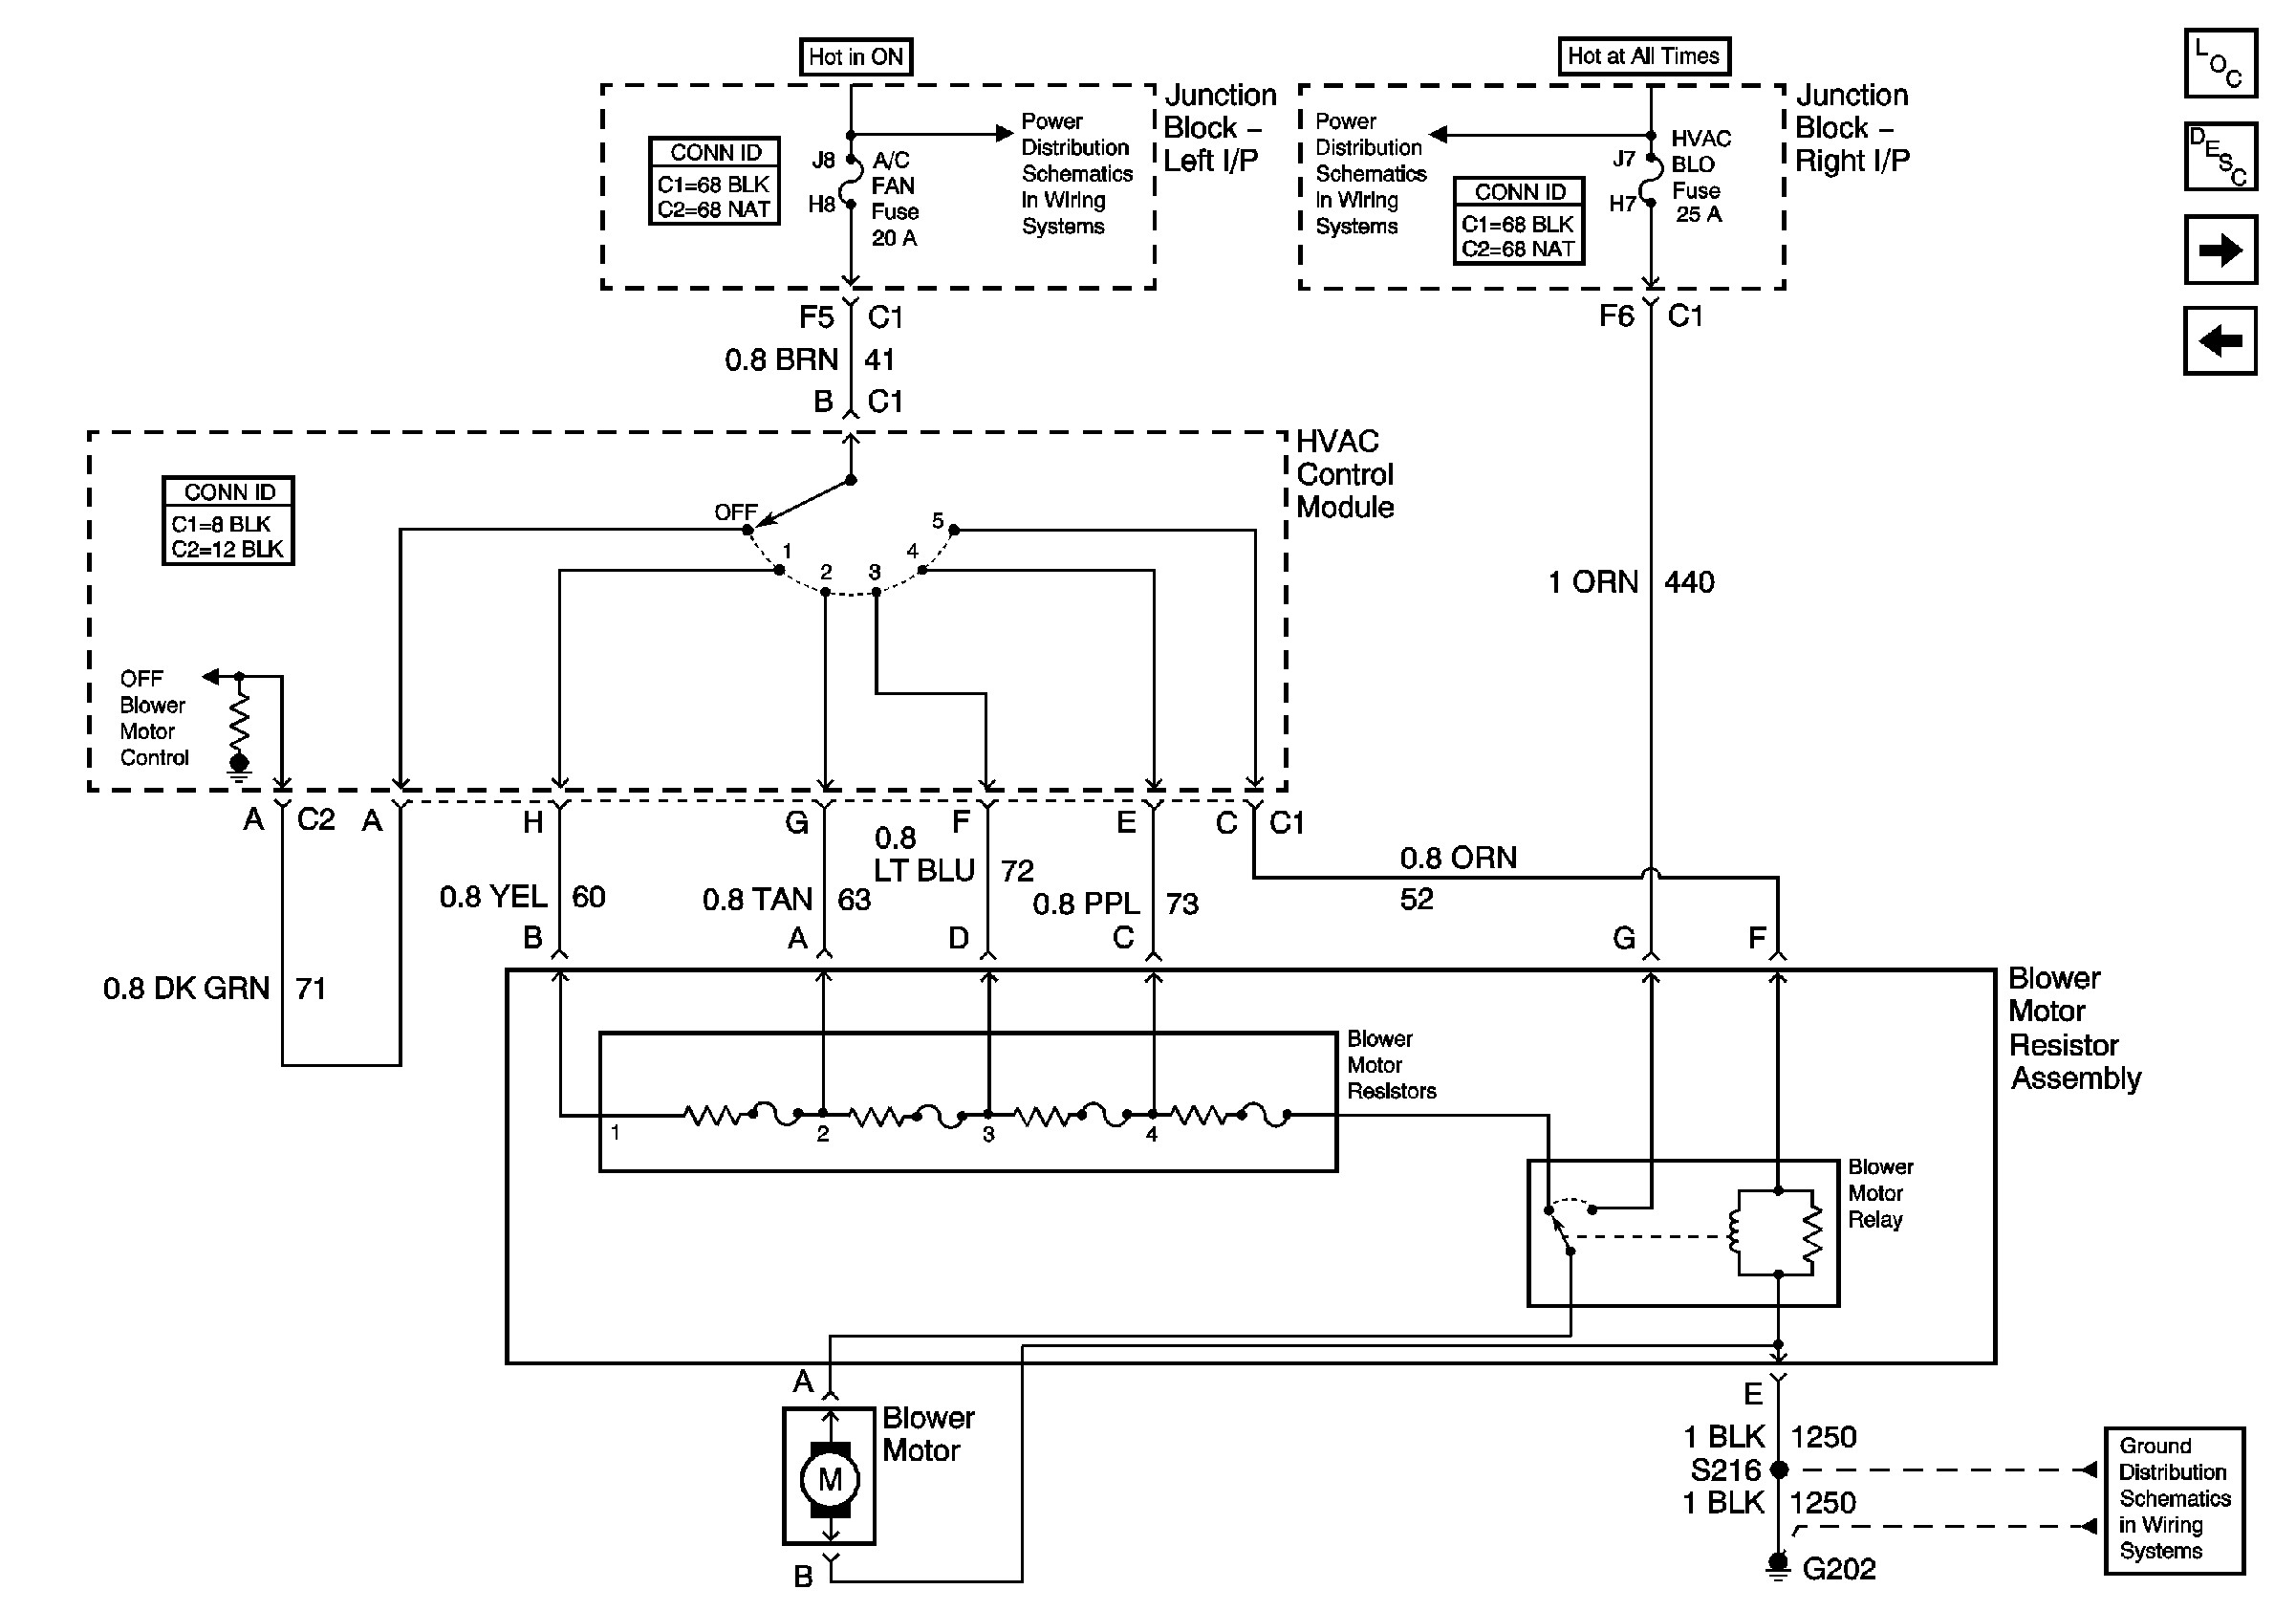 diagram] wiring diagram for 2006 silverado lt full version hd quality  silverado lt - diagramseo.patriziobarbieri.it  diagram database - patriziobarbieri